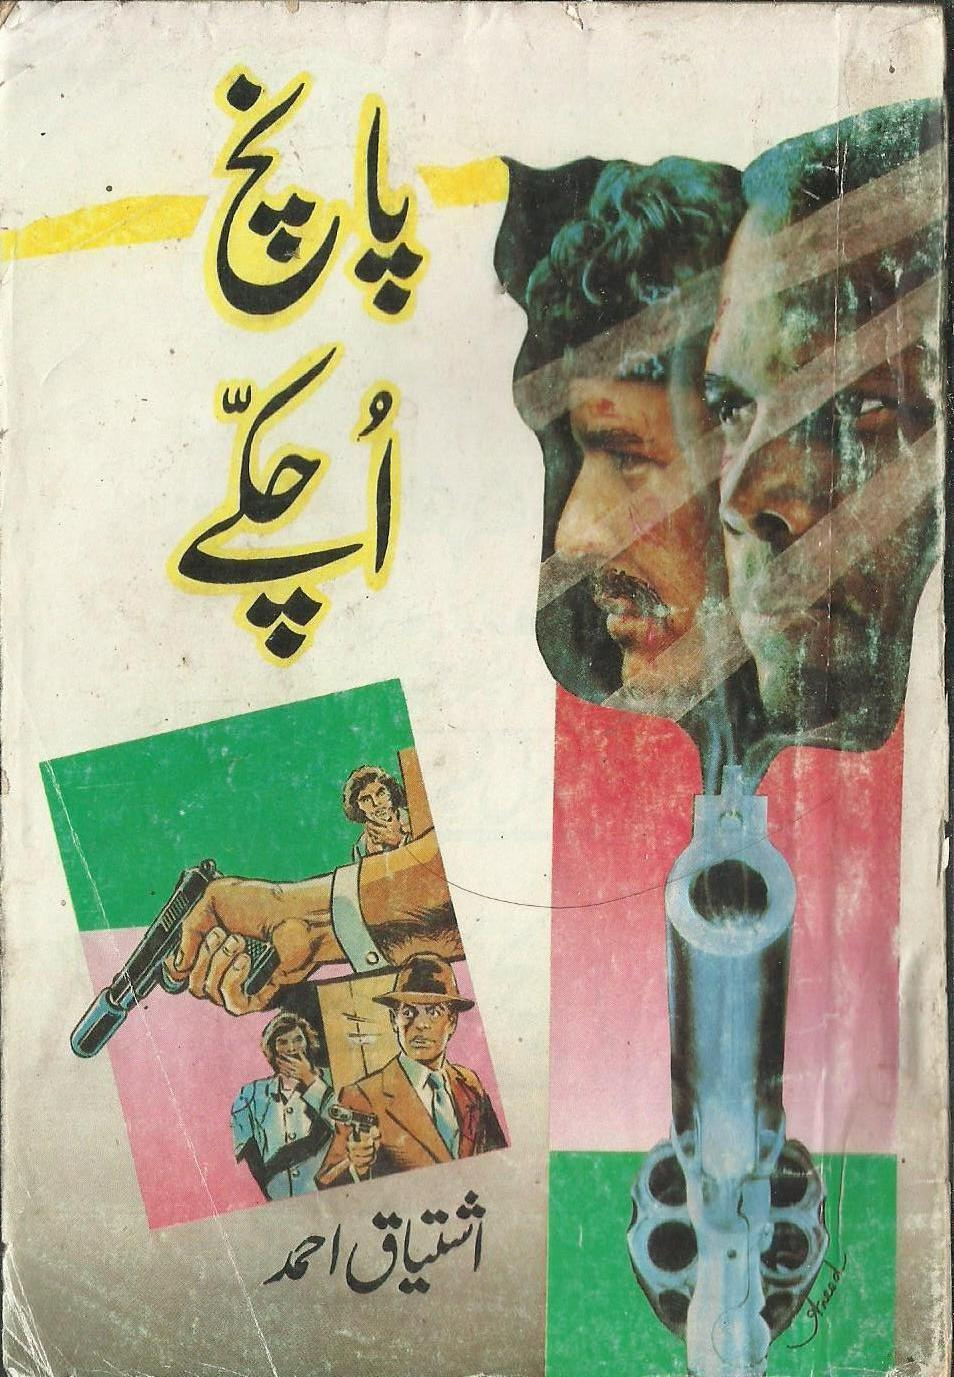 Paanch Uchakay Mini Khas No. by Ishtiaq Ahmed